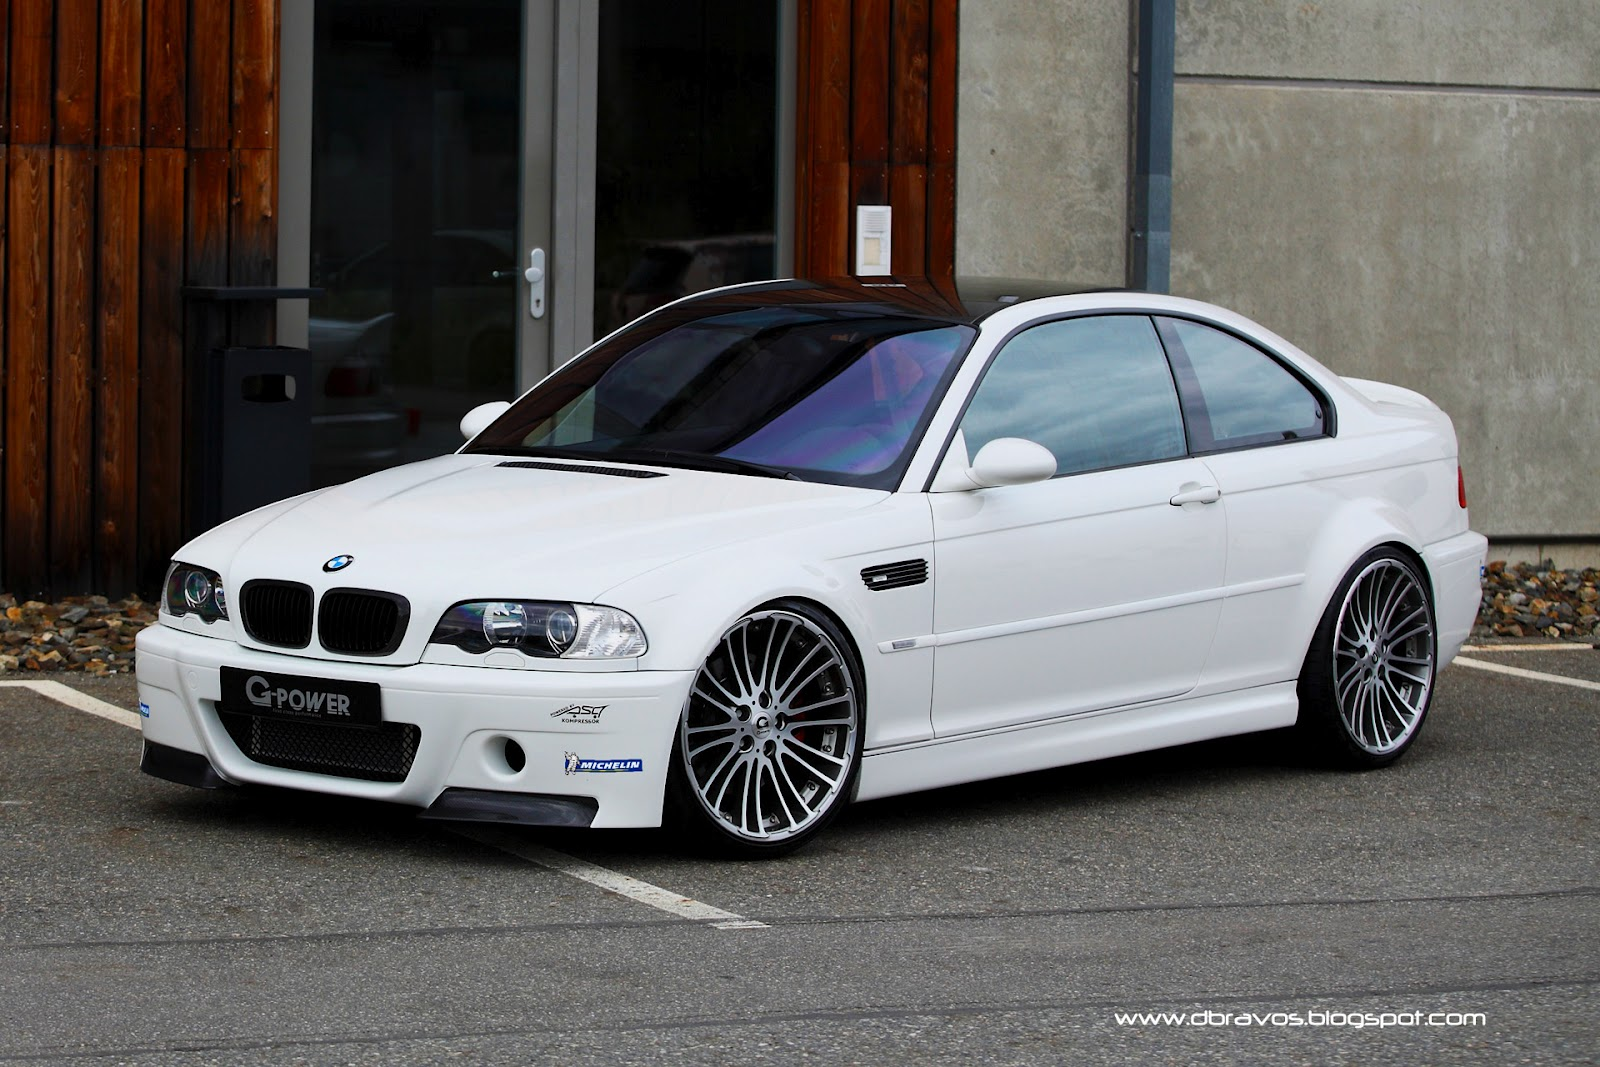 Autos Test Drive Noticias Y Mucho Mas G Power M3 E46 With 450 Hp